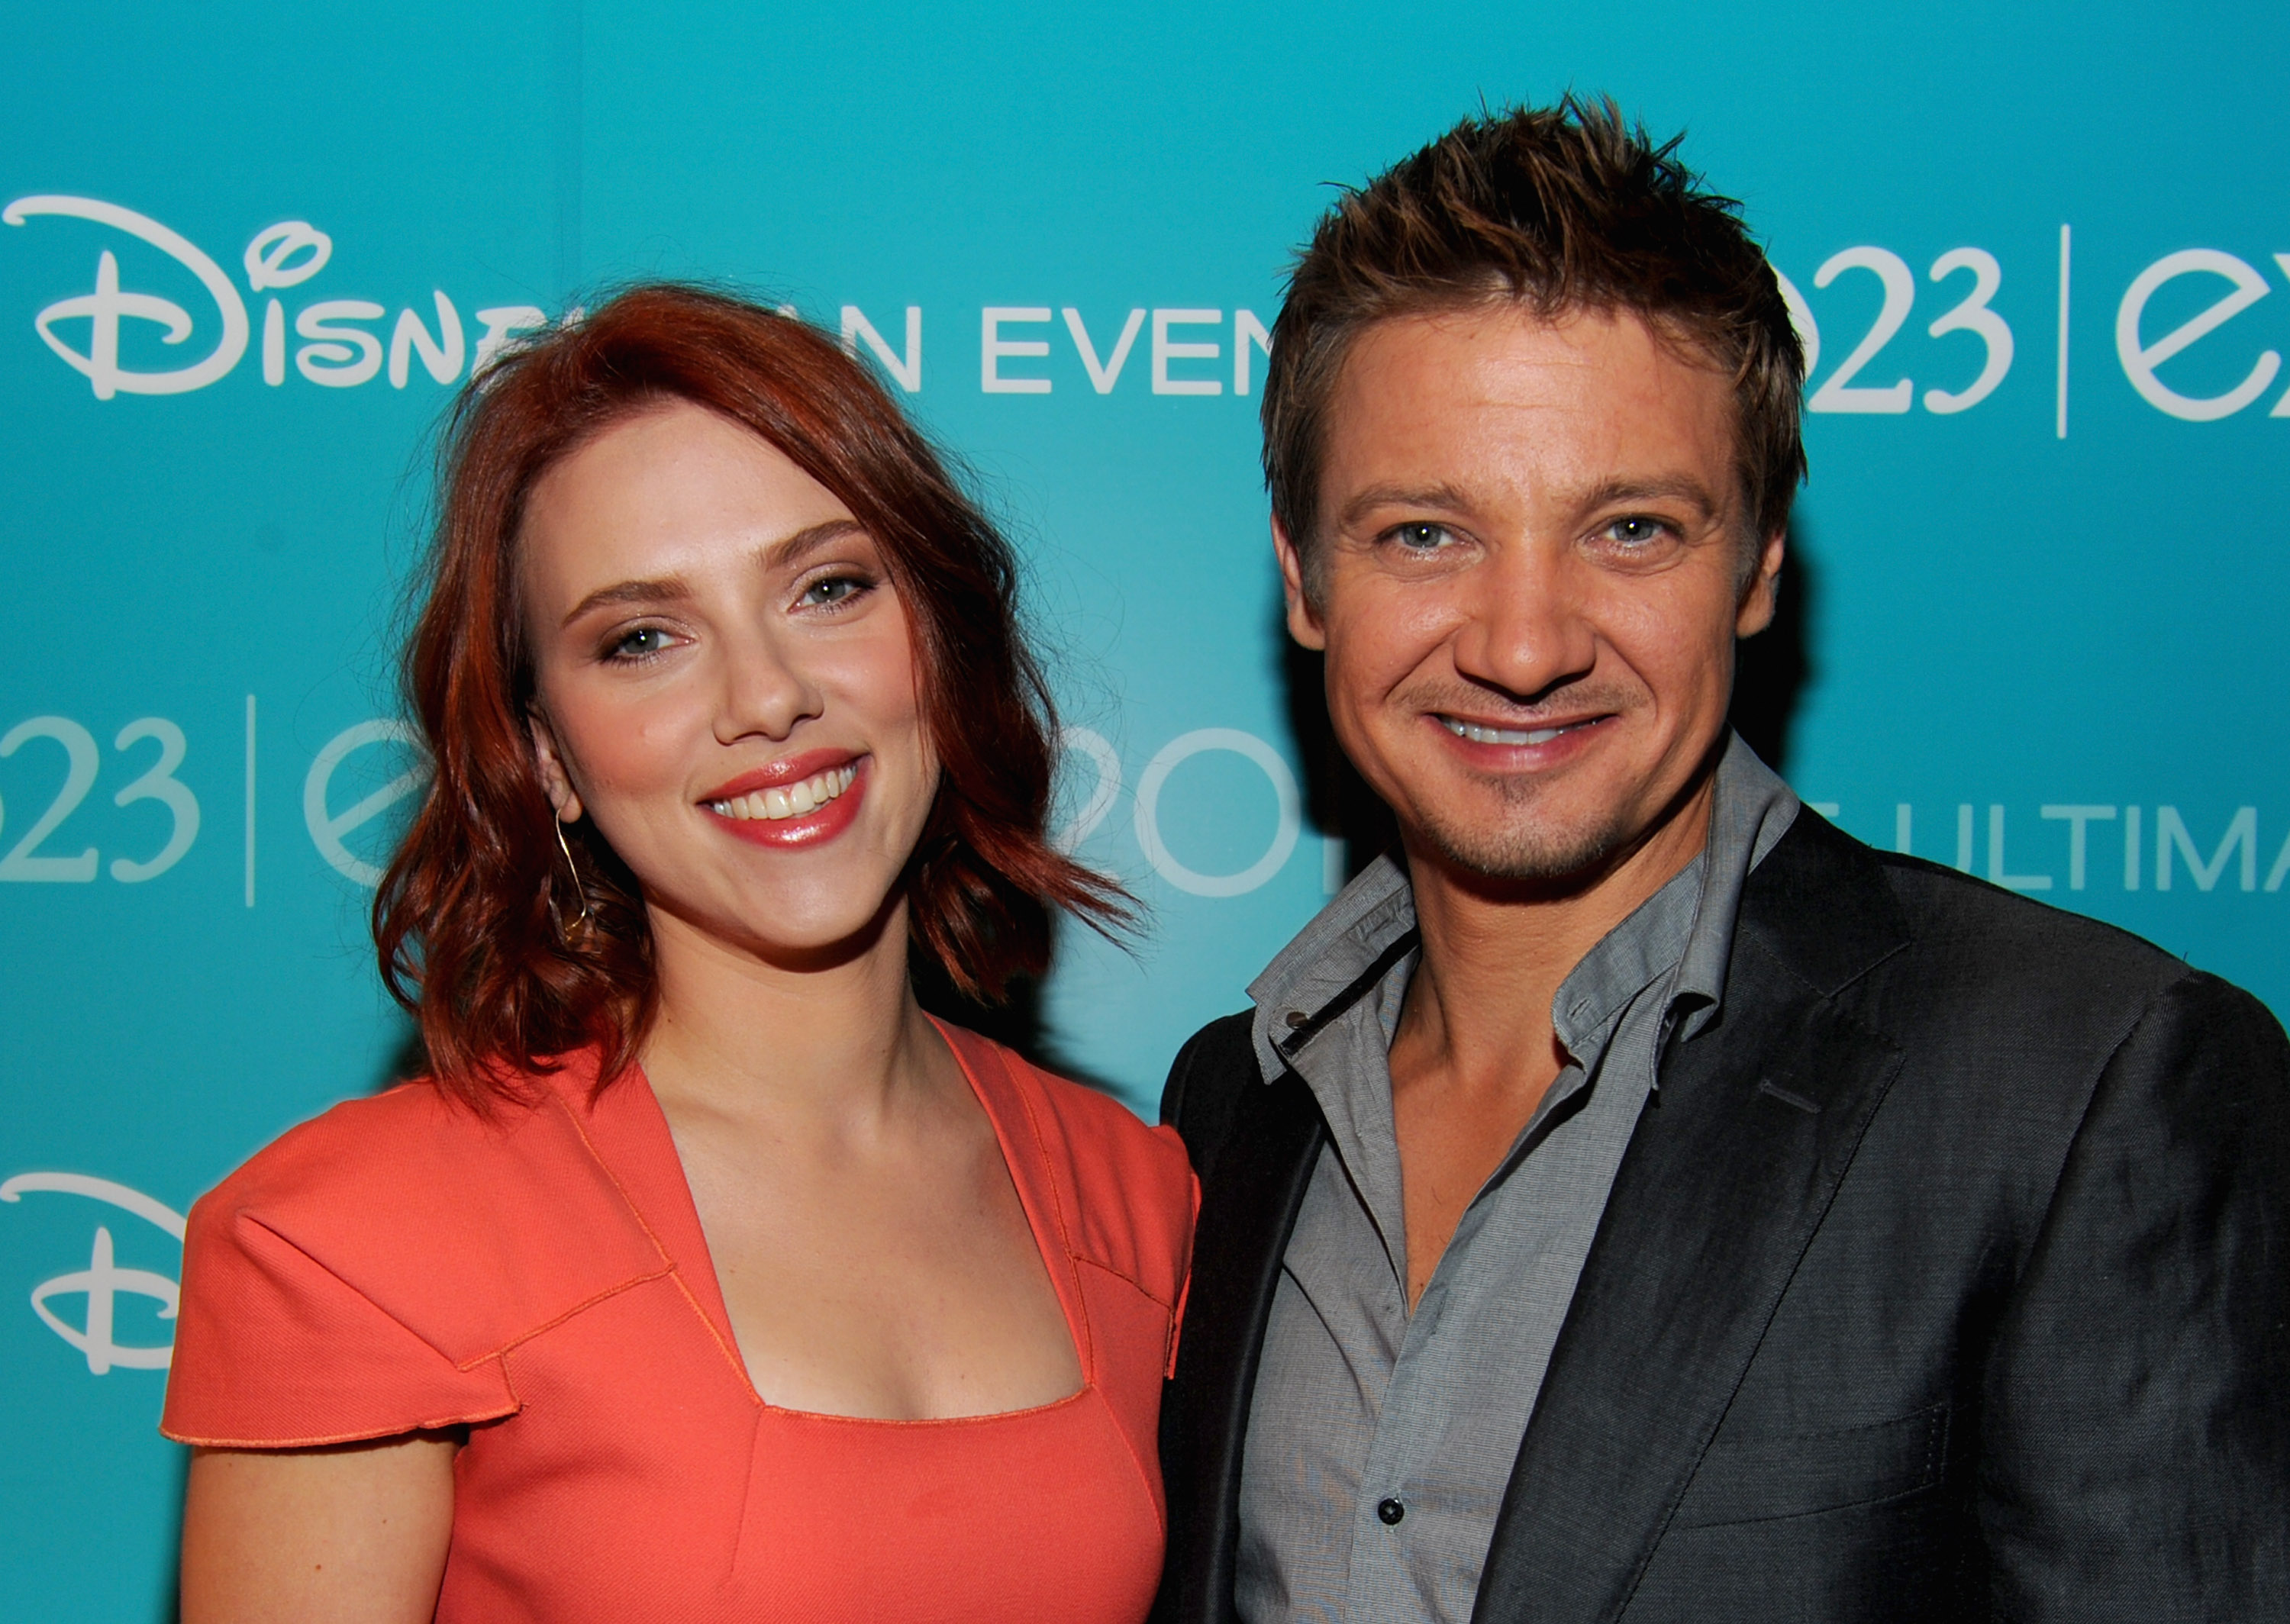 Jeremy Renner and Scarlett Johansson flashed smiles backstage.